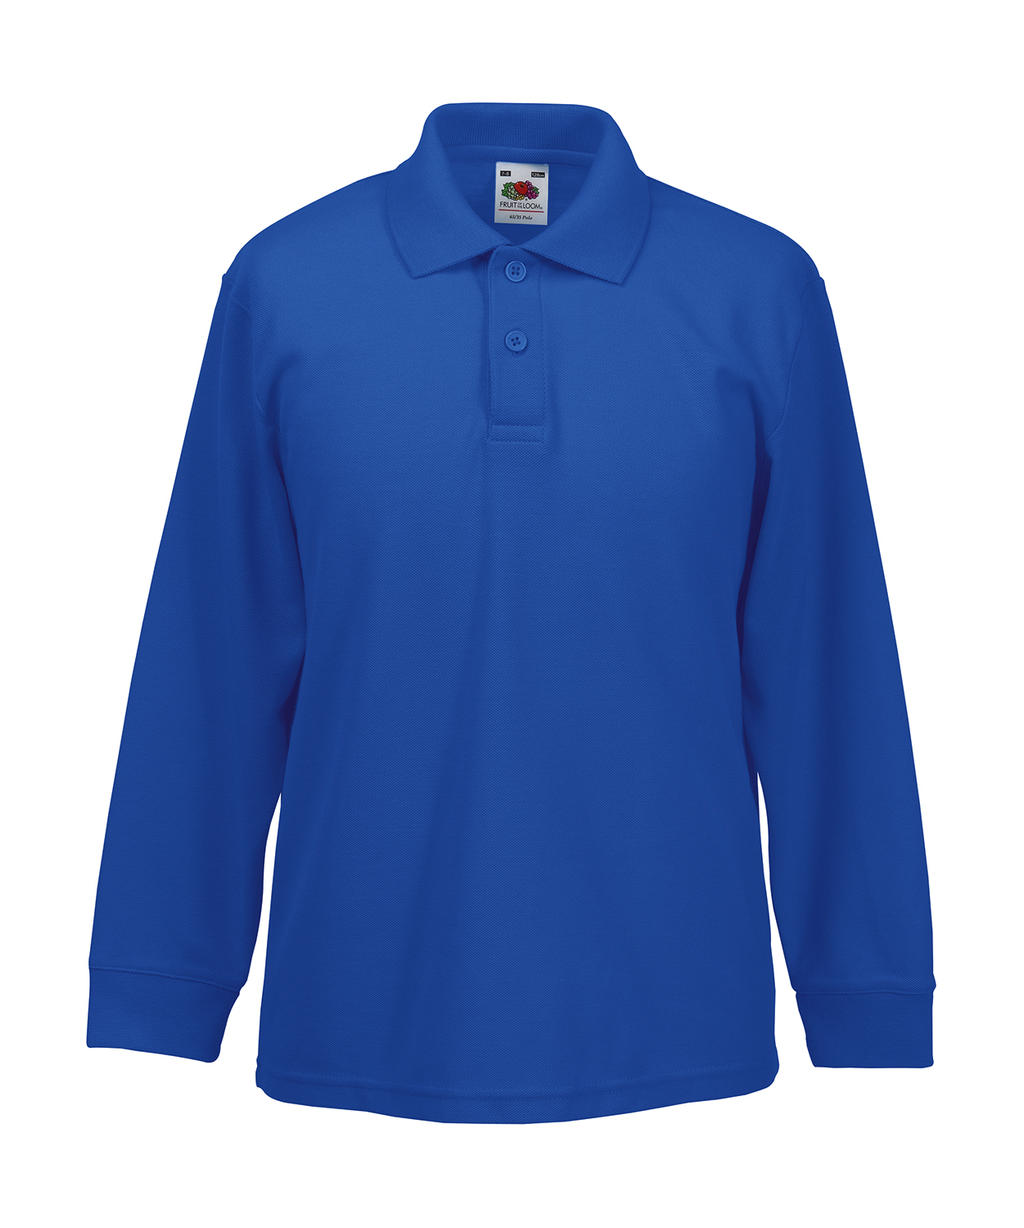 Fruit of the Loom Kids 65/35 Long Sleeve Polo